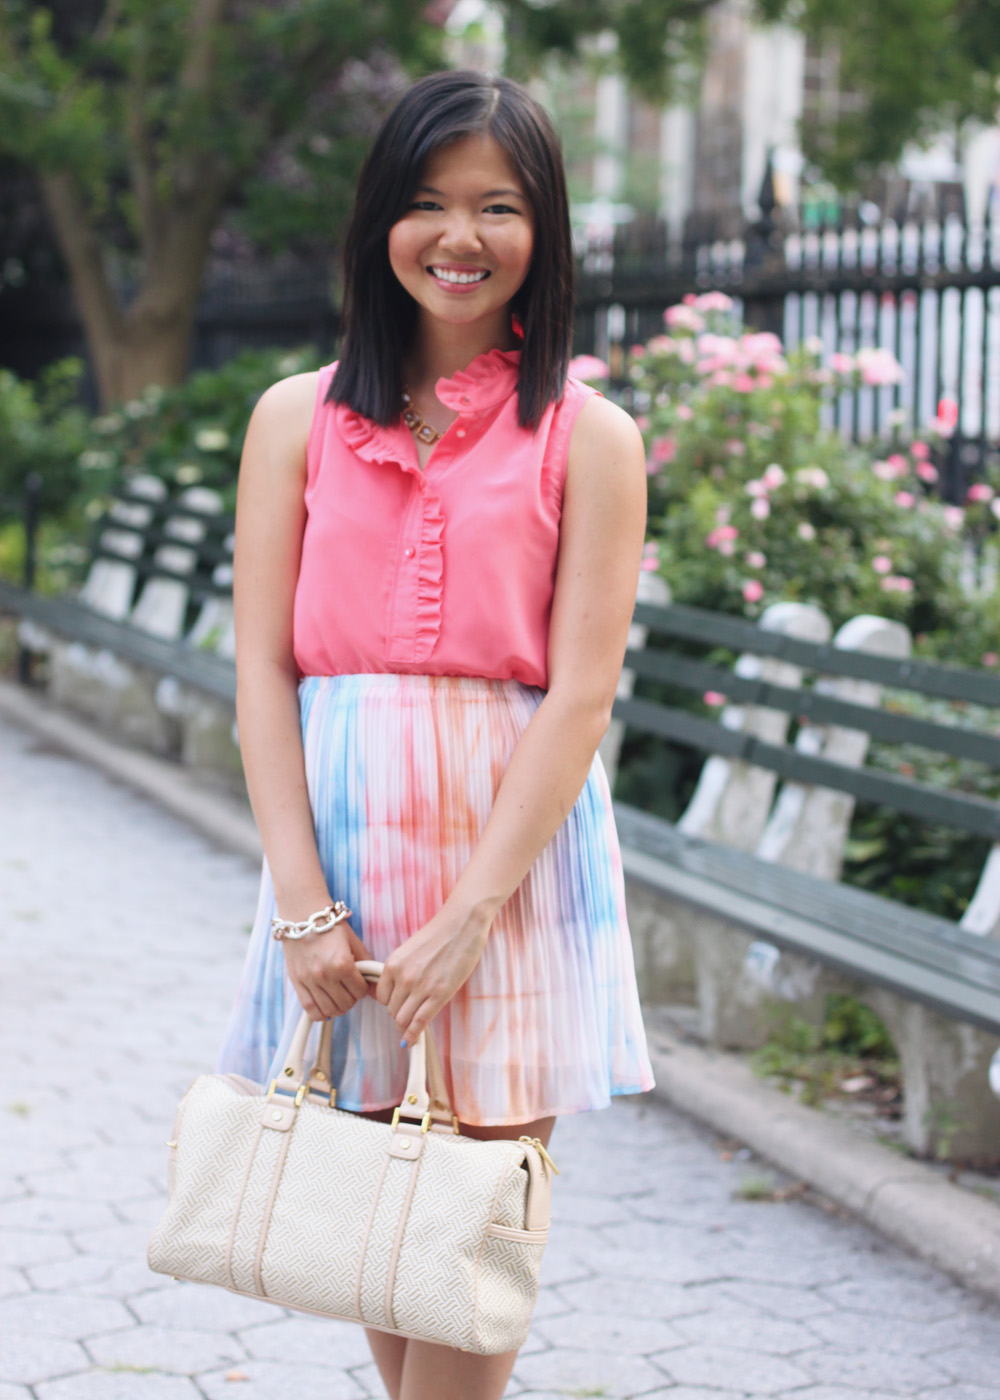 405eae0c62 ... Skirt The Rules Blog  NYC fashion blogger  style blog  summer outfit  photos  ...